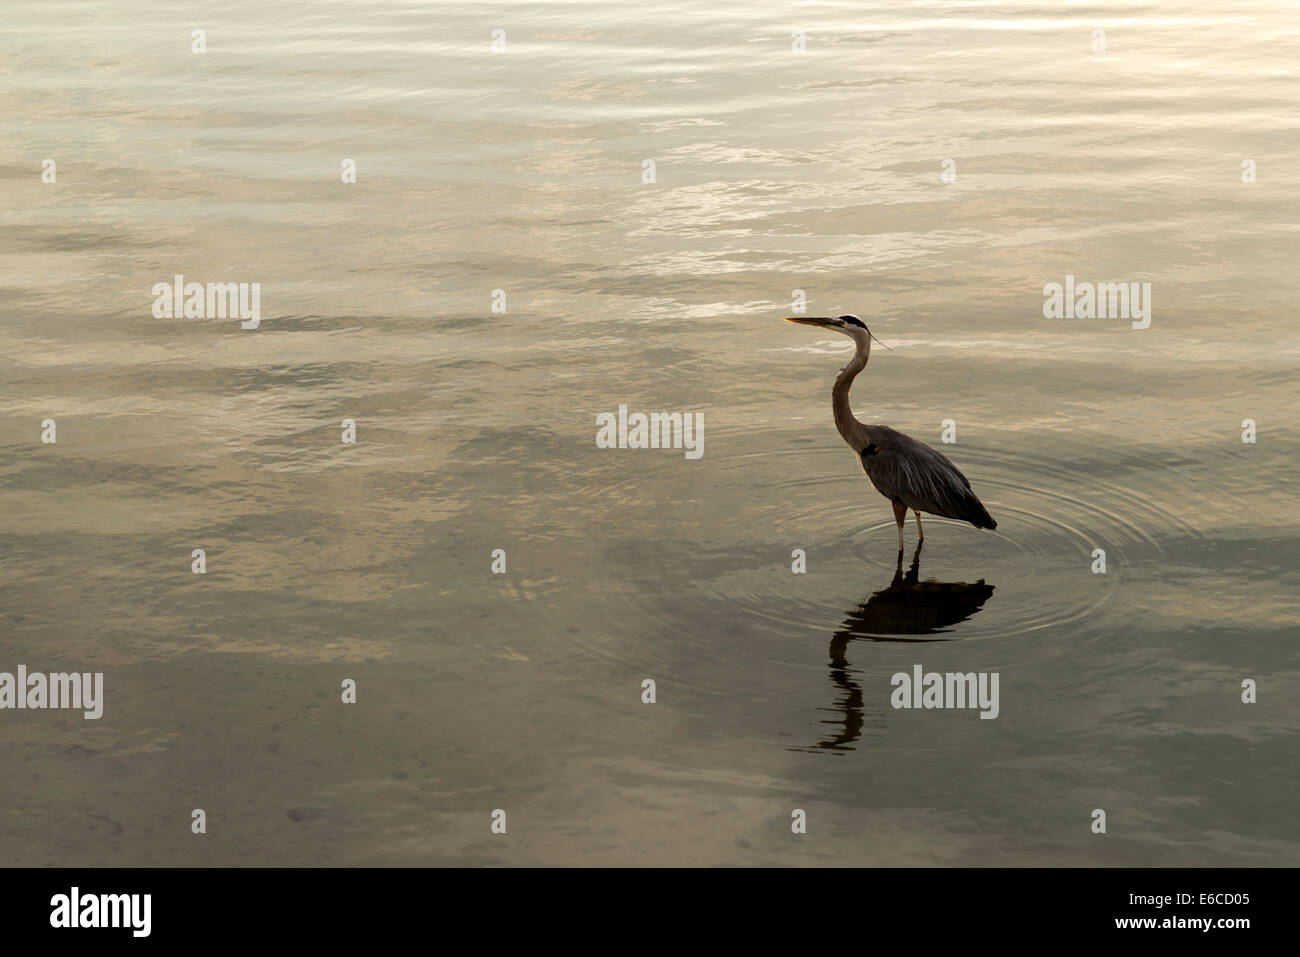 A bird looking out - Stock Image